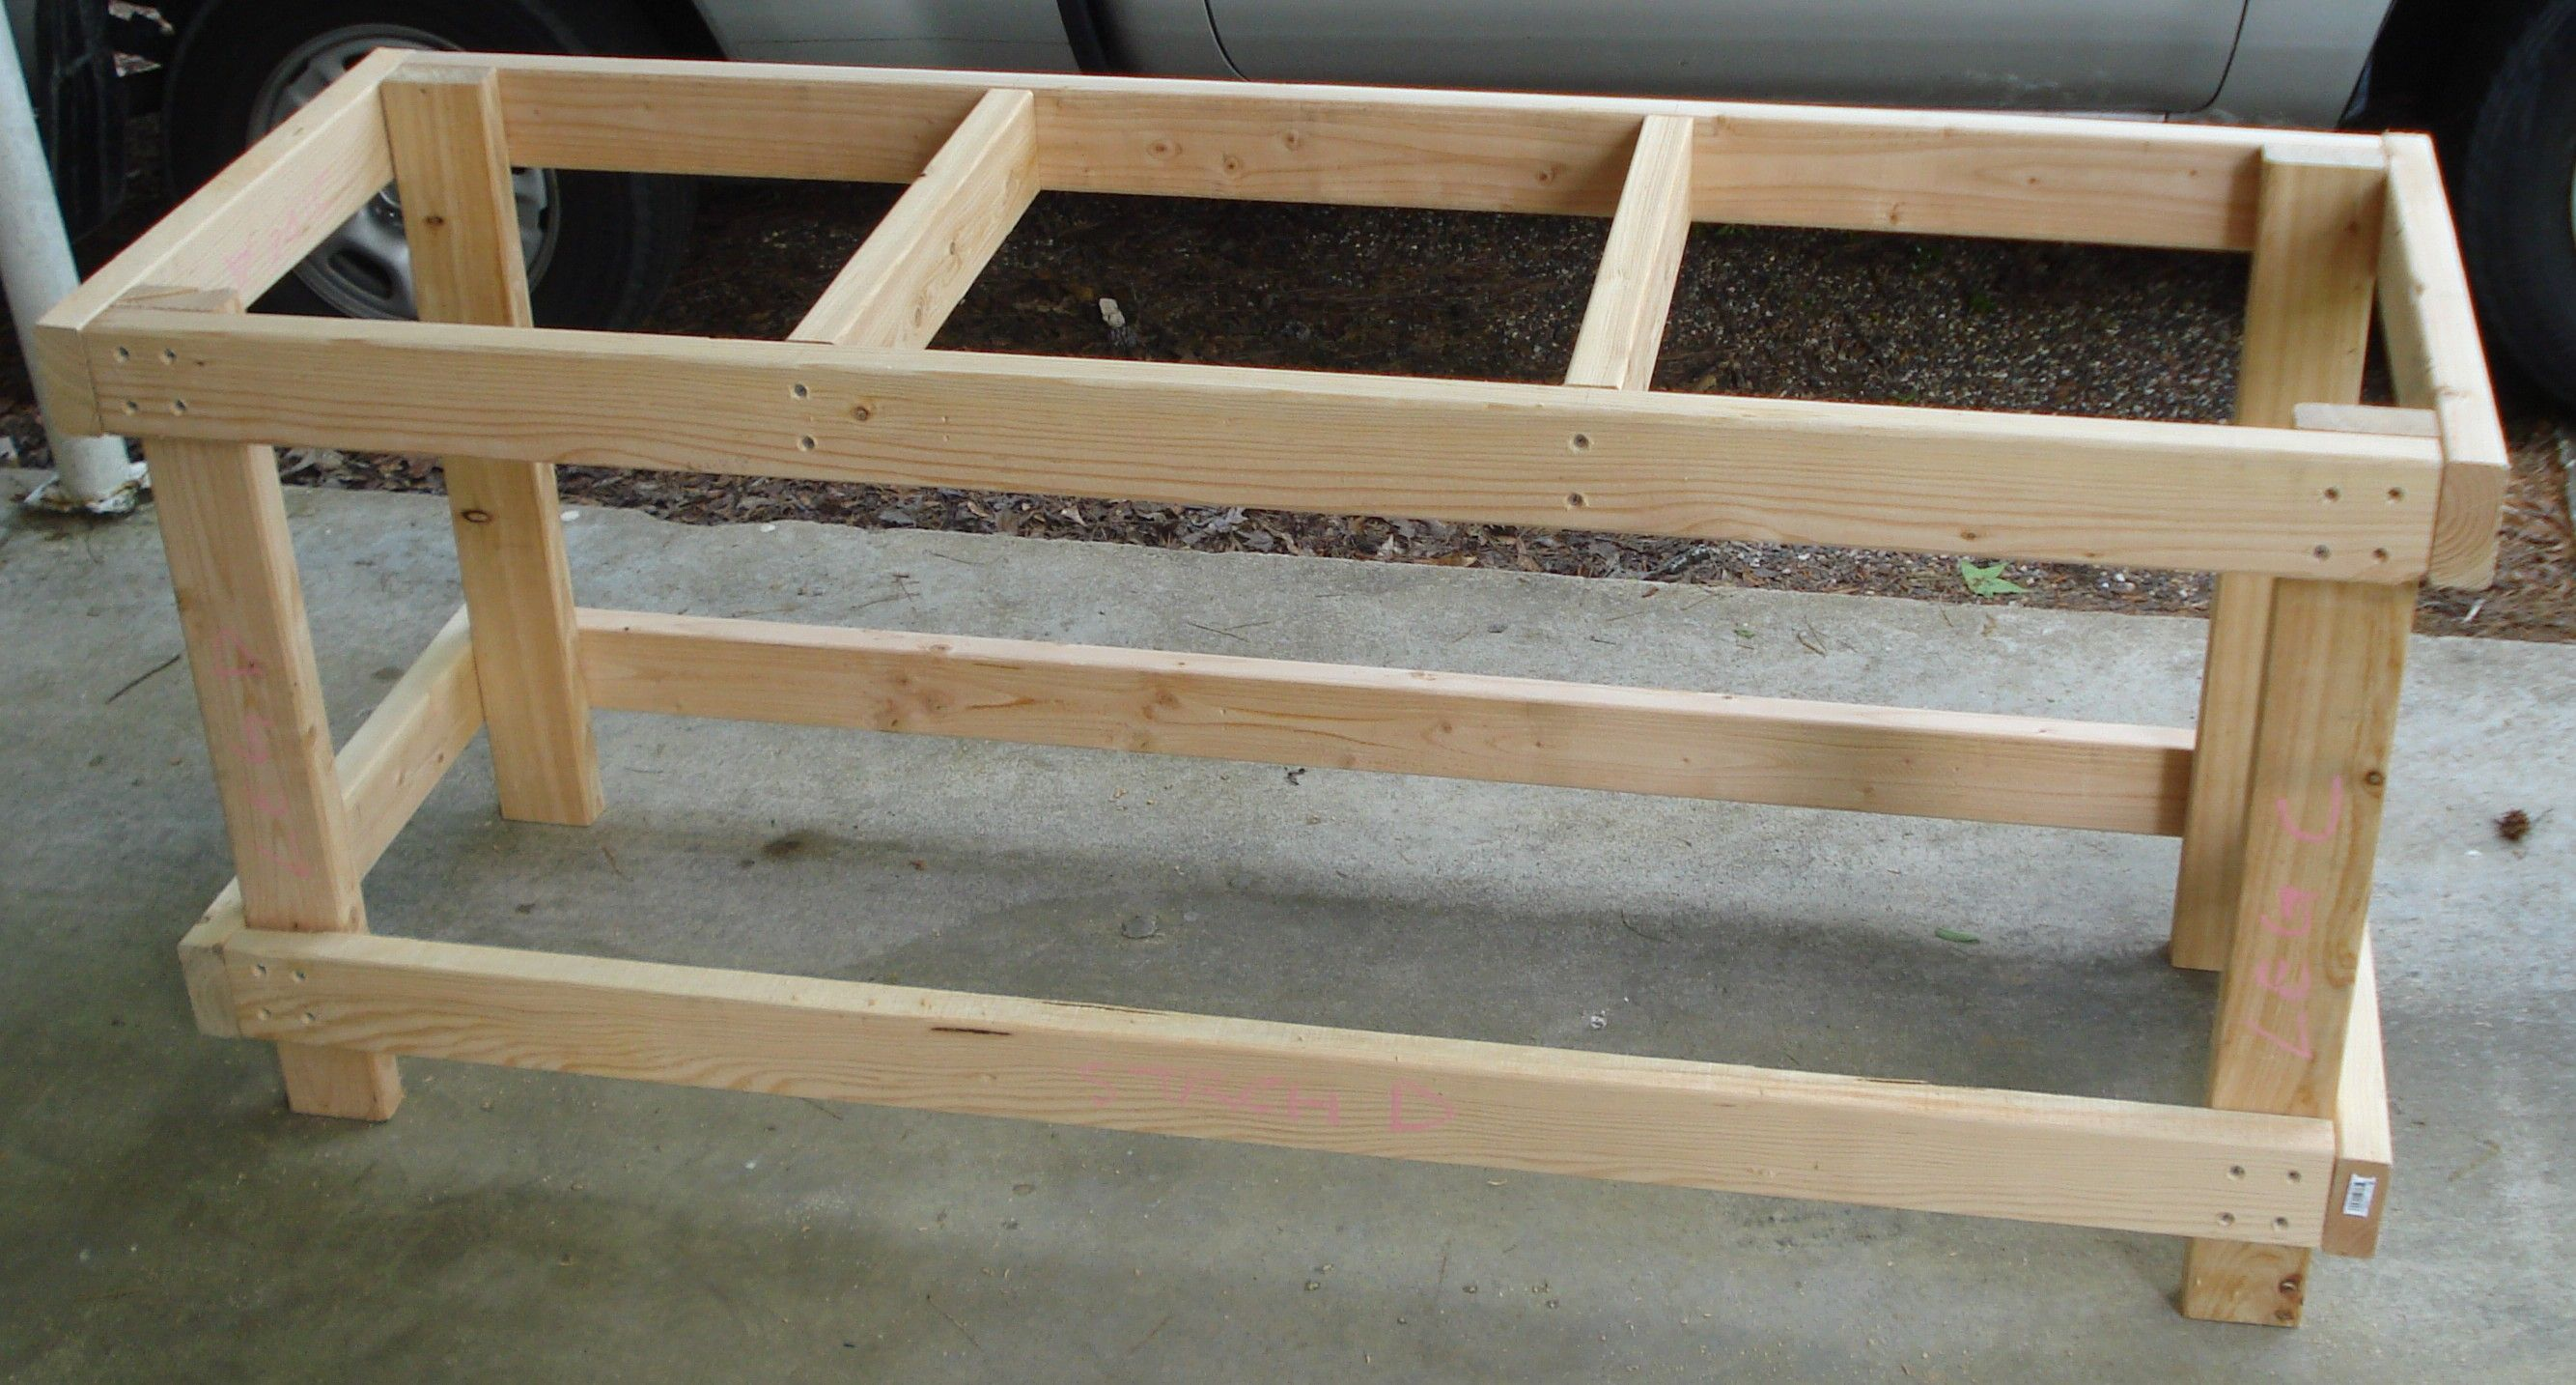 Simple Workbench Plans 24 Free Download l shaped patio ...